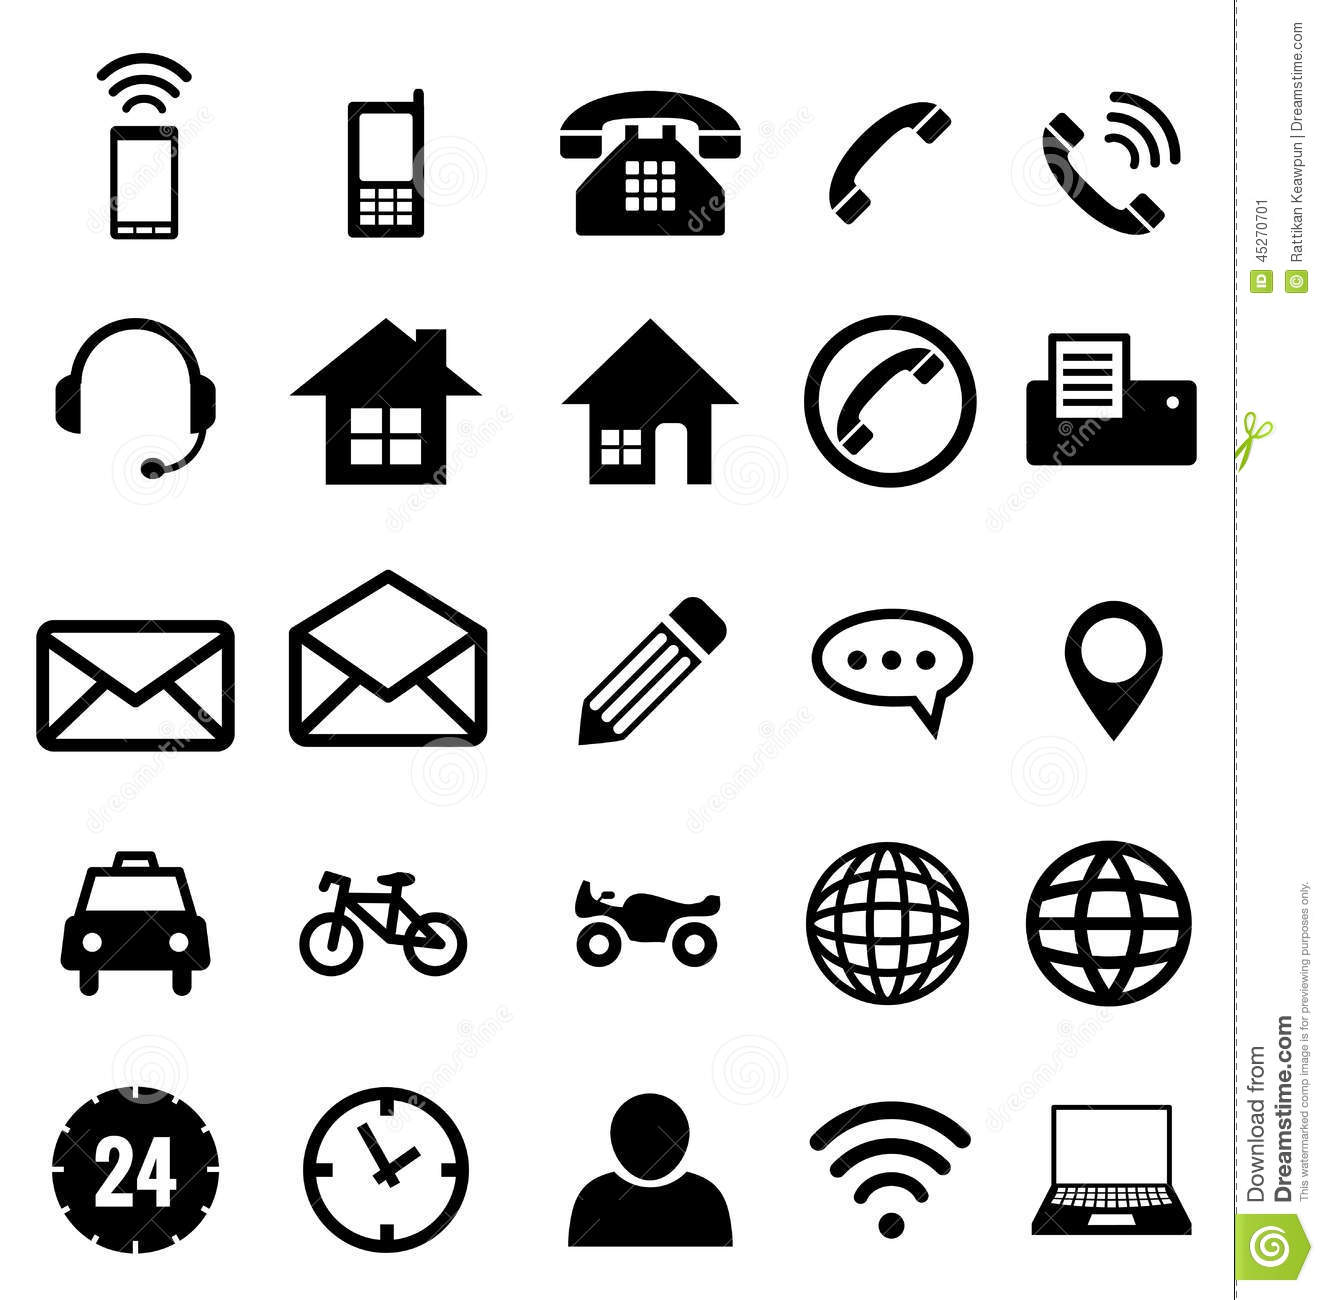 Contact Icon Collection For Business Stock Vector Illustration Of